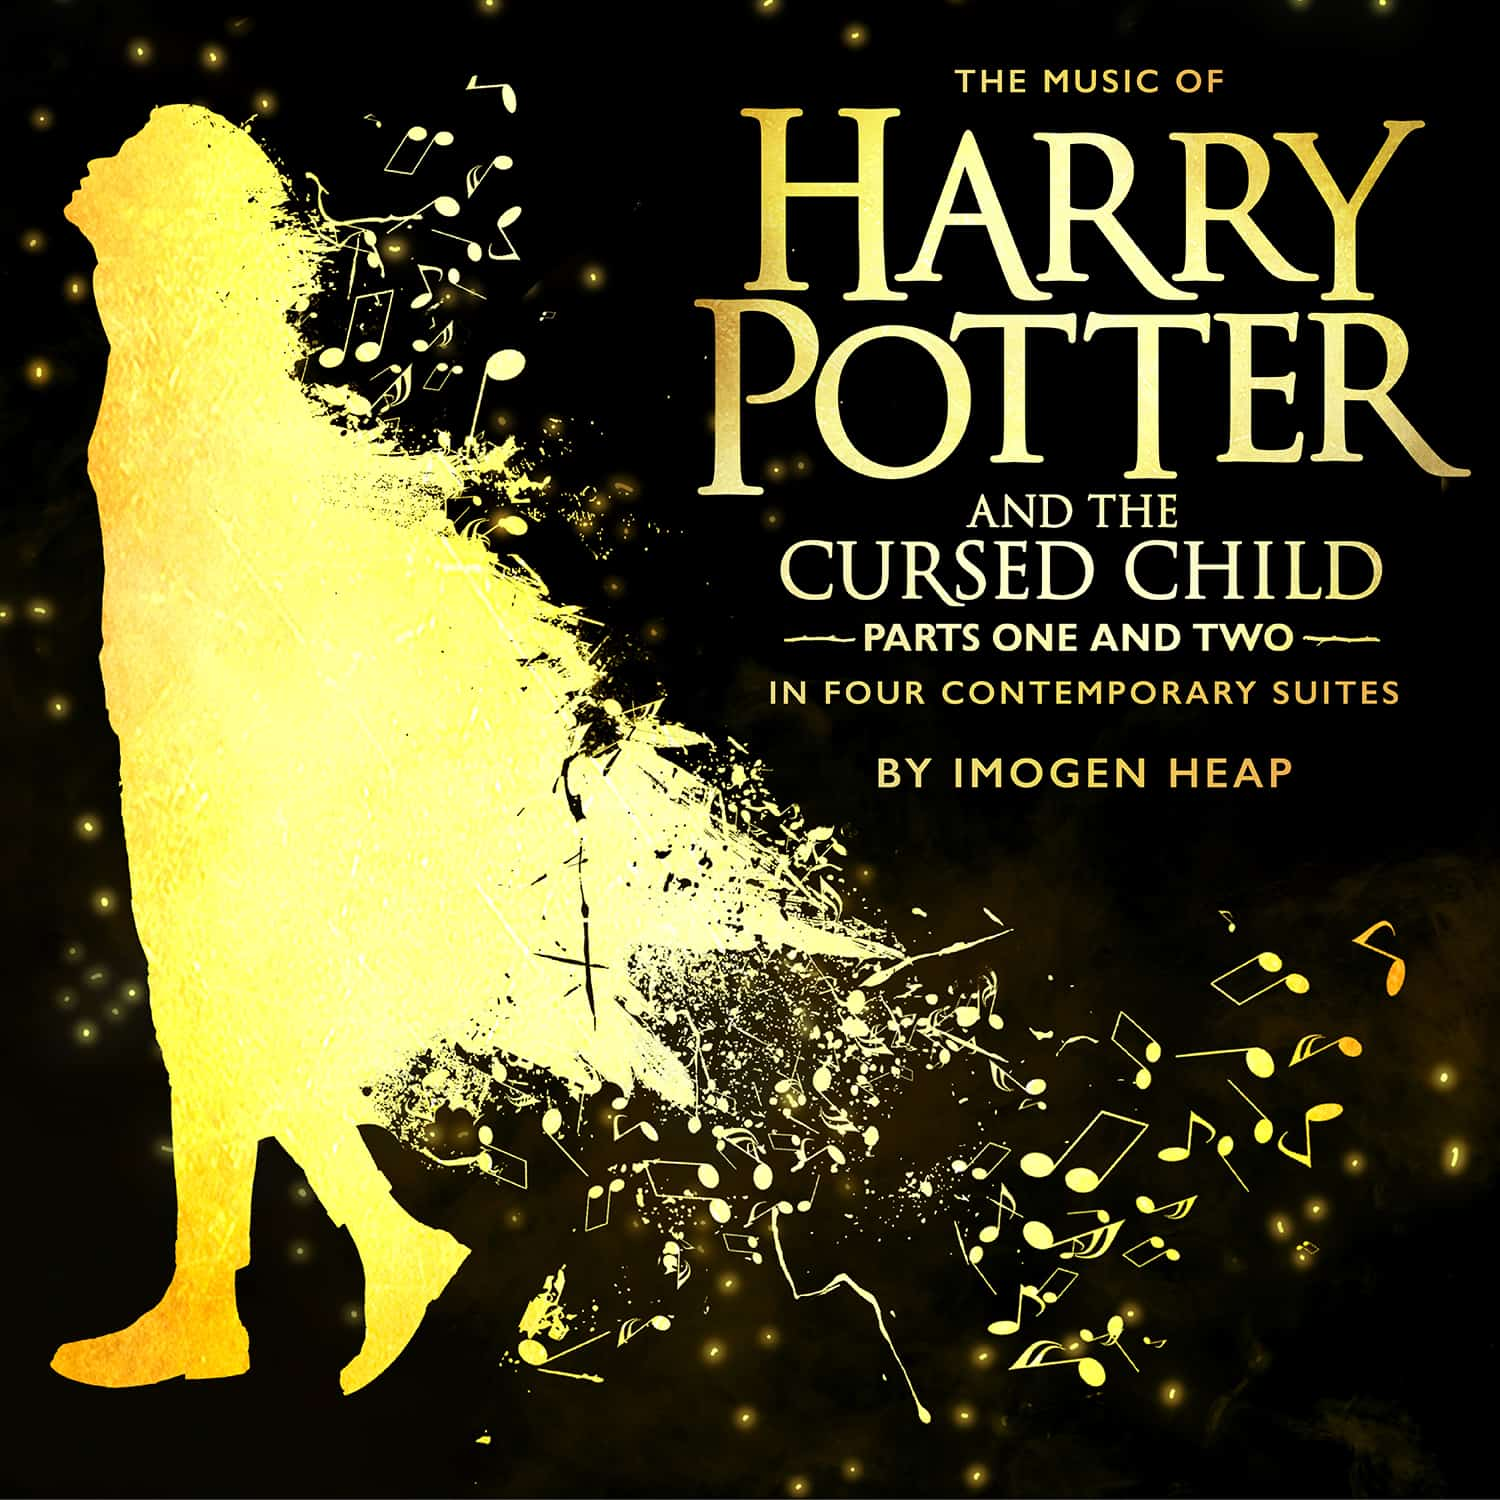 Potterish ATUALIZADO: Trilha sonora de Harry Potter and the Cursed Child ganha data de lançamento; escute